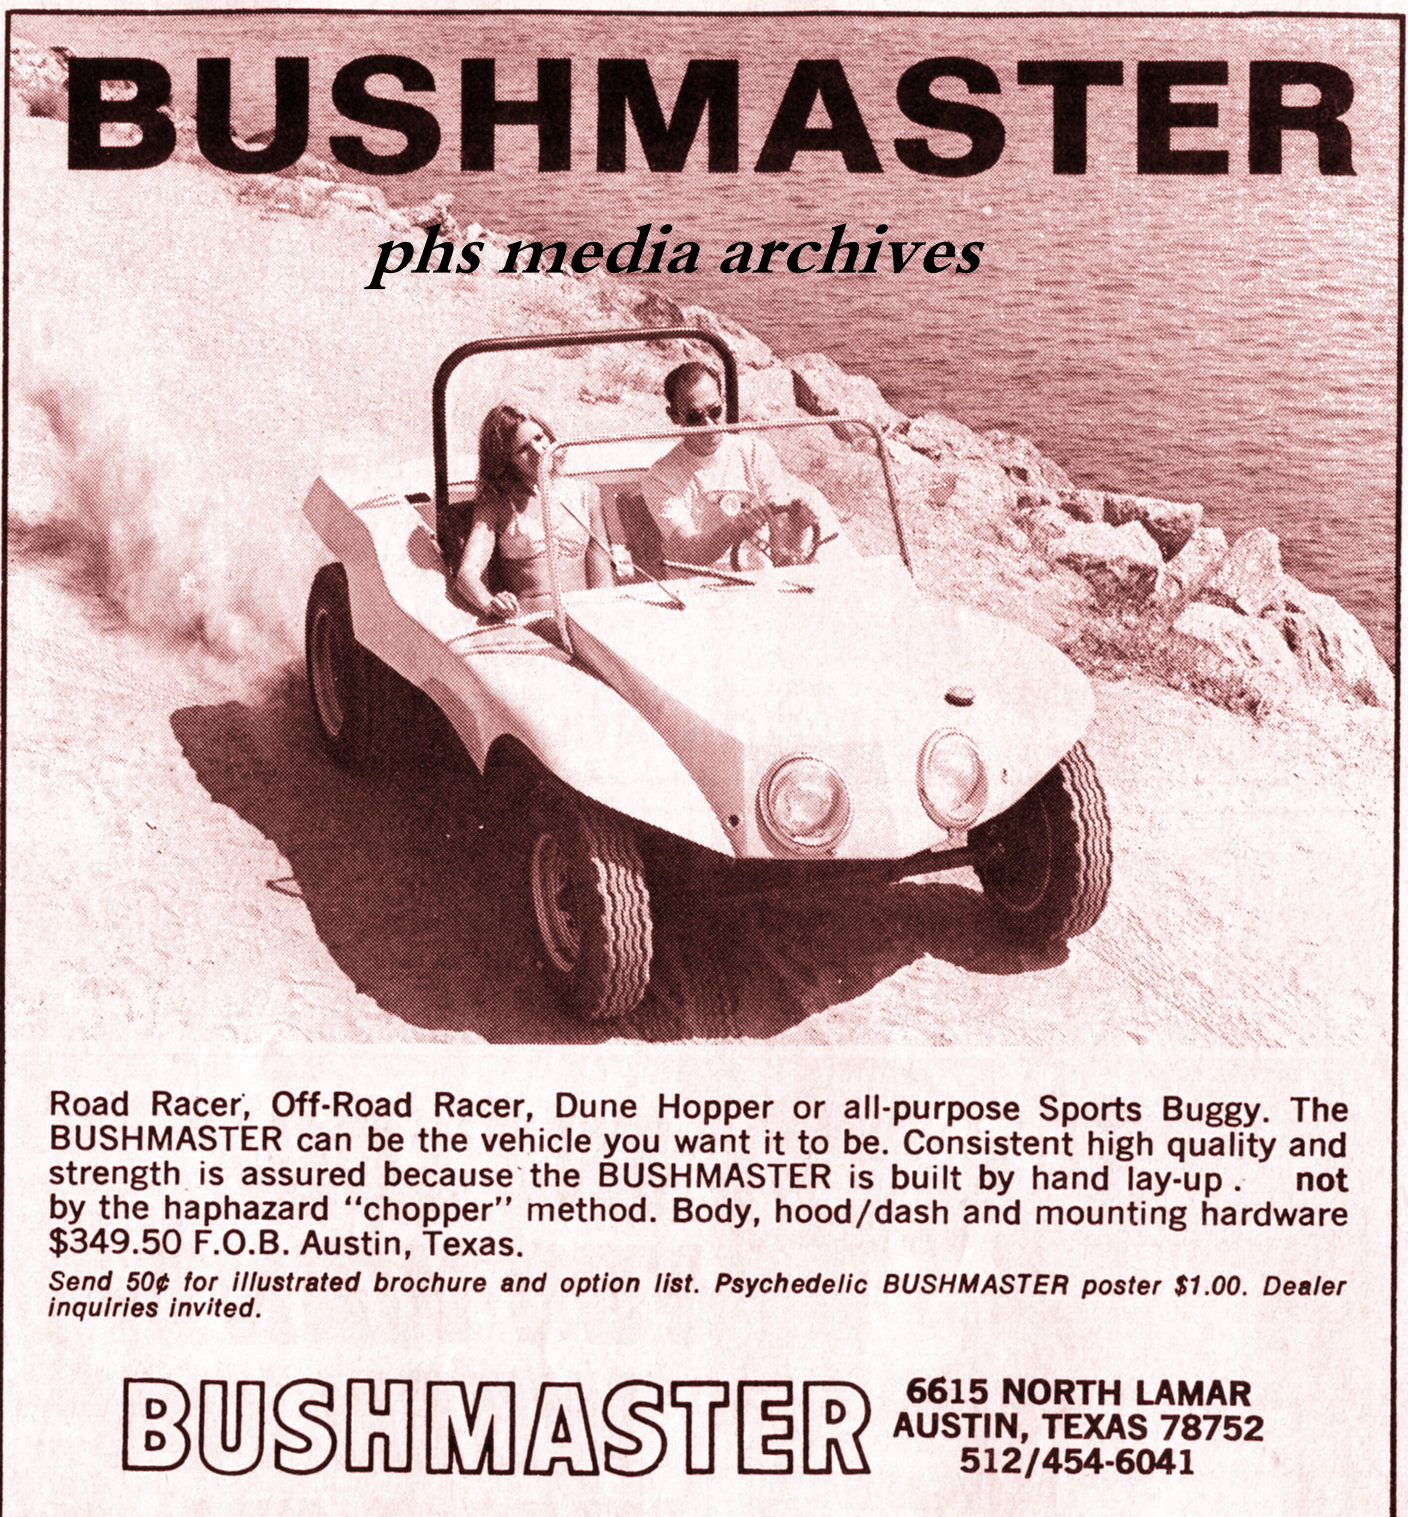 Summer Special On 1960s Dune Buggy Kits Phscollectorcarworld 1967 Vw Beetle Simple Wiring Diagram Based In Austin Texas Bushmaster Had A Few Unique Design Cues Such As The Close Faired Headlamps And Rather Tall Boxy Hood Fenders Are Fully Enclosed